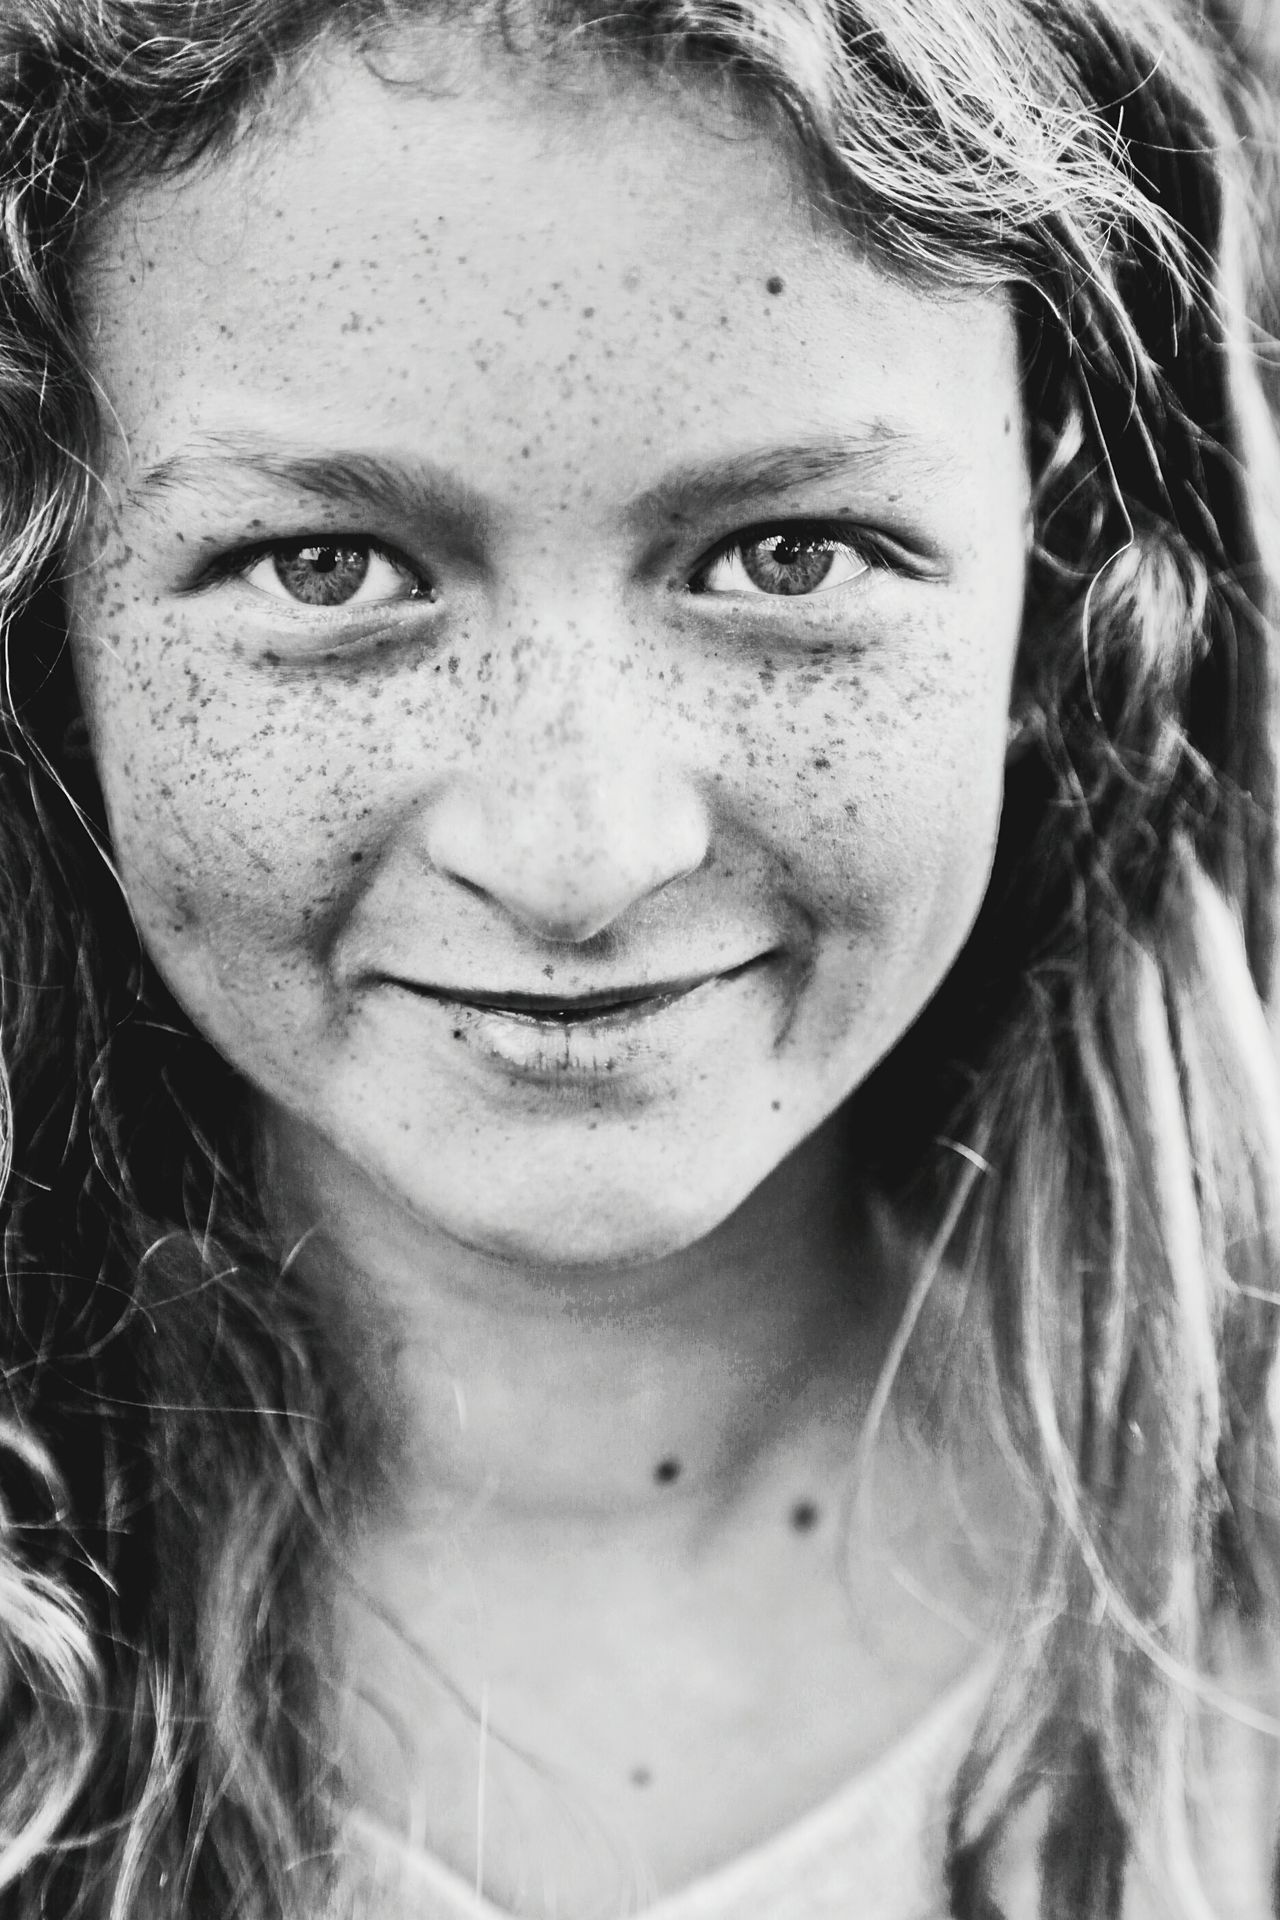 Portrait Freckle Beauty Youth Beautiful People Real People Freckled Girl Close-up Beautiful Girl Blackandwhite Black & White Black And White Smiling Freckles Teenager Teenage Girls Teen One Girl Only Looking At Camera Lifestyle People Youth Of Today Fashion Eyes Eyes Are Soul Reflection EyeEmNewHere Art Is Everywhere Resist The Portraitist - 2017 EyeEm Awards